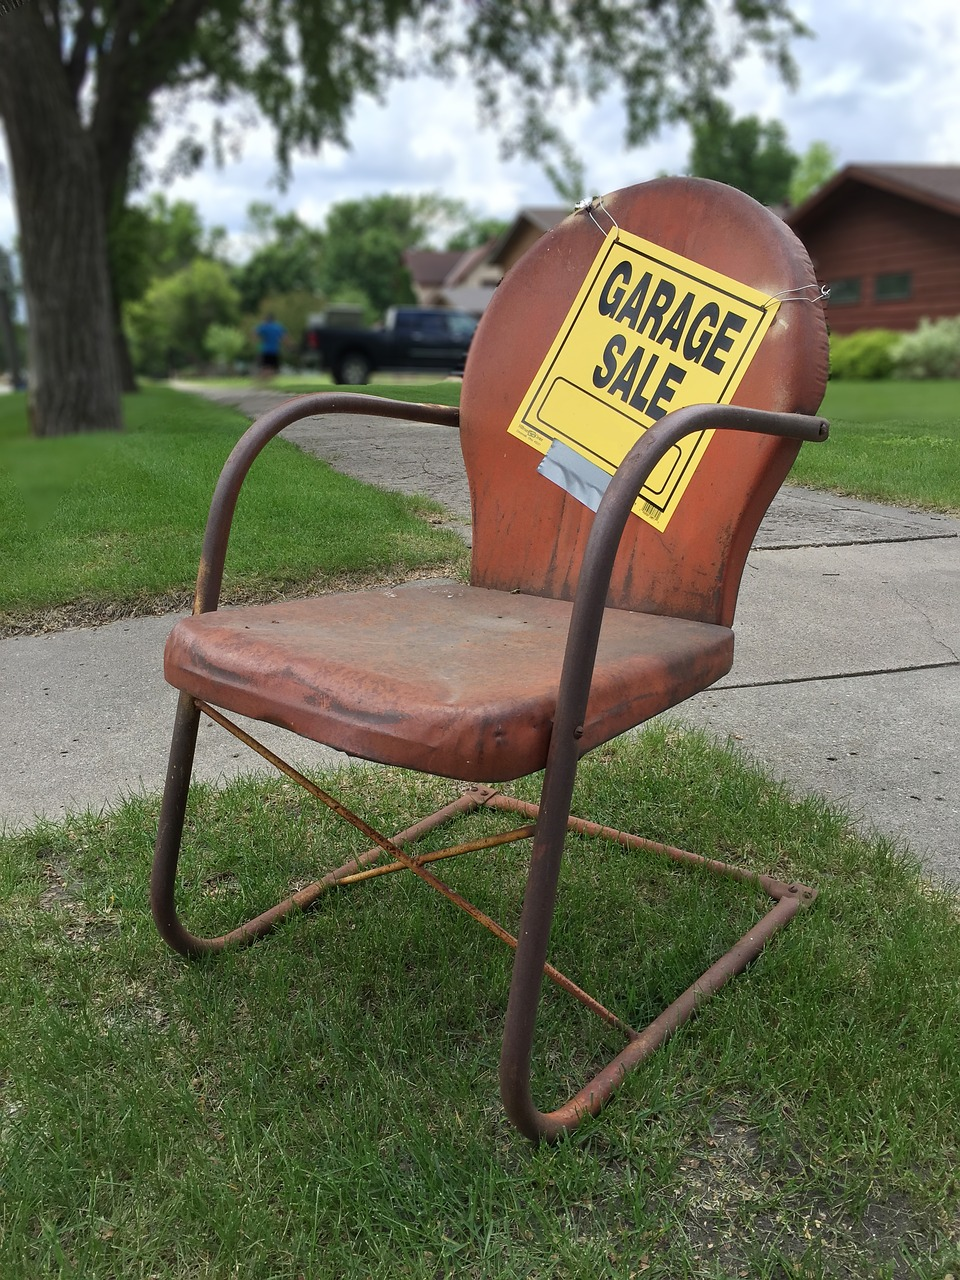 Garage sale sign,rusty,rusty metal chair,vintage,old lawn chair